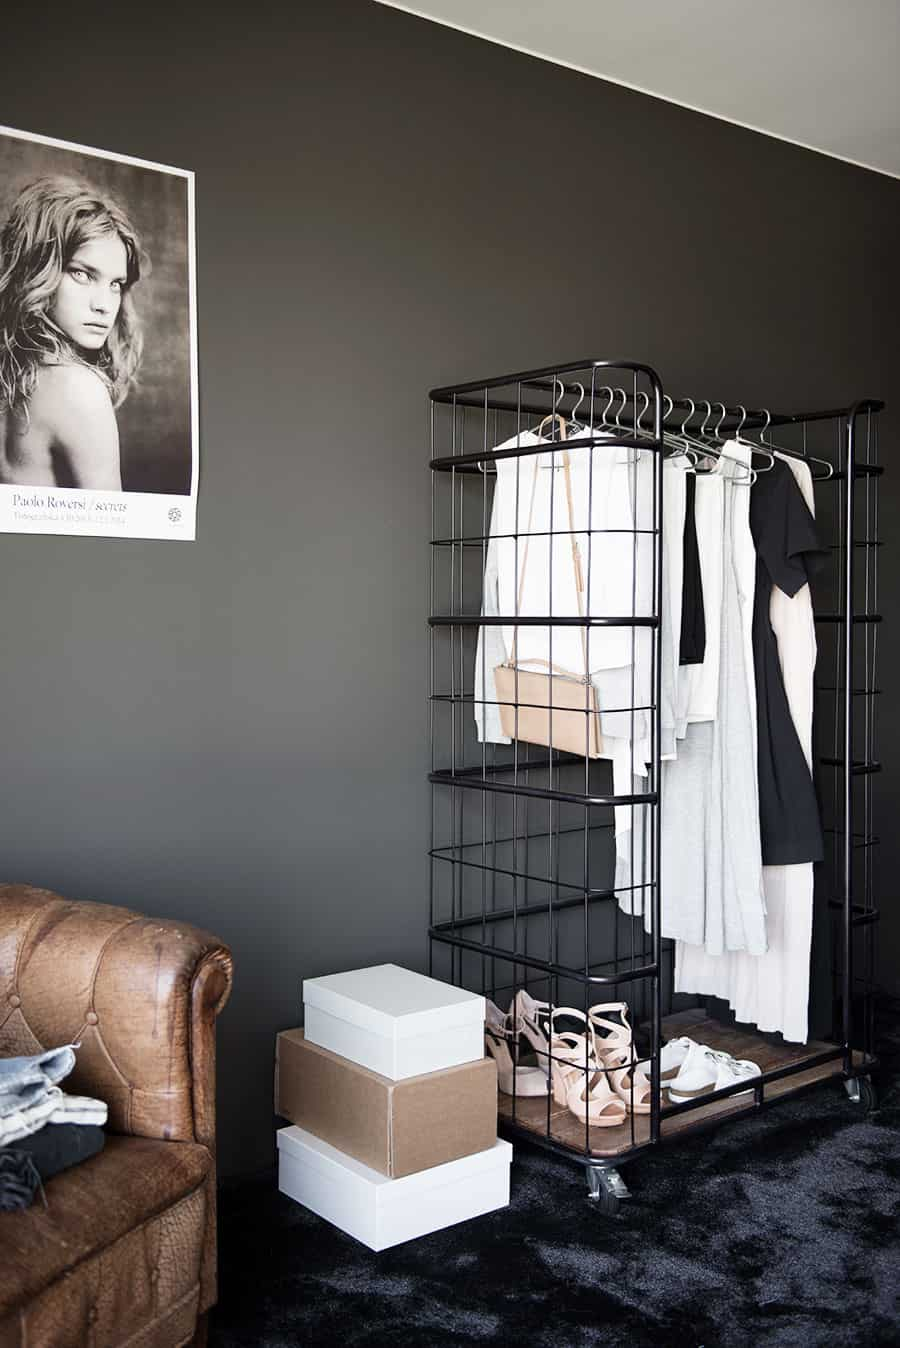 Cage clothes rack